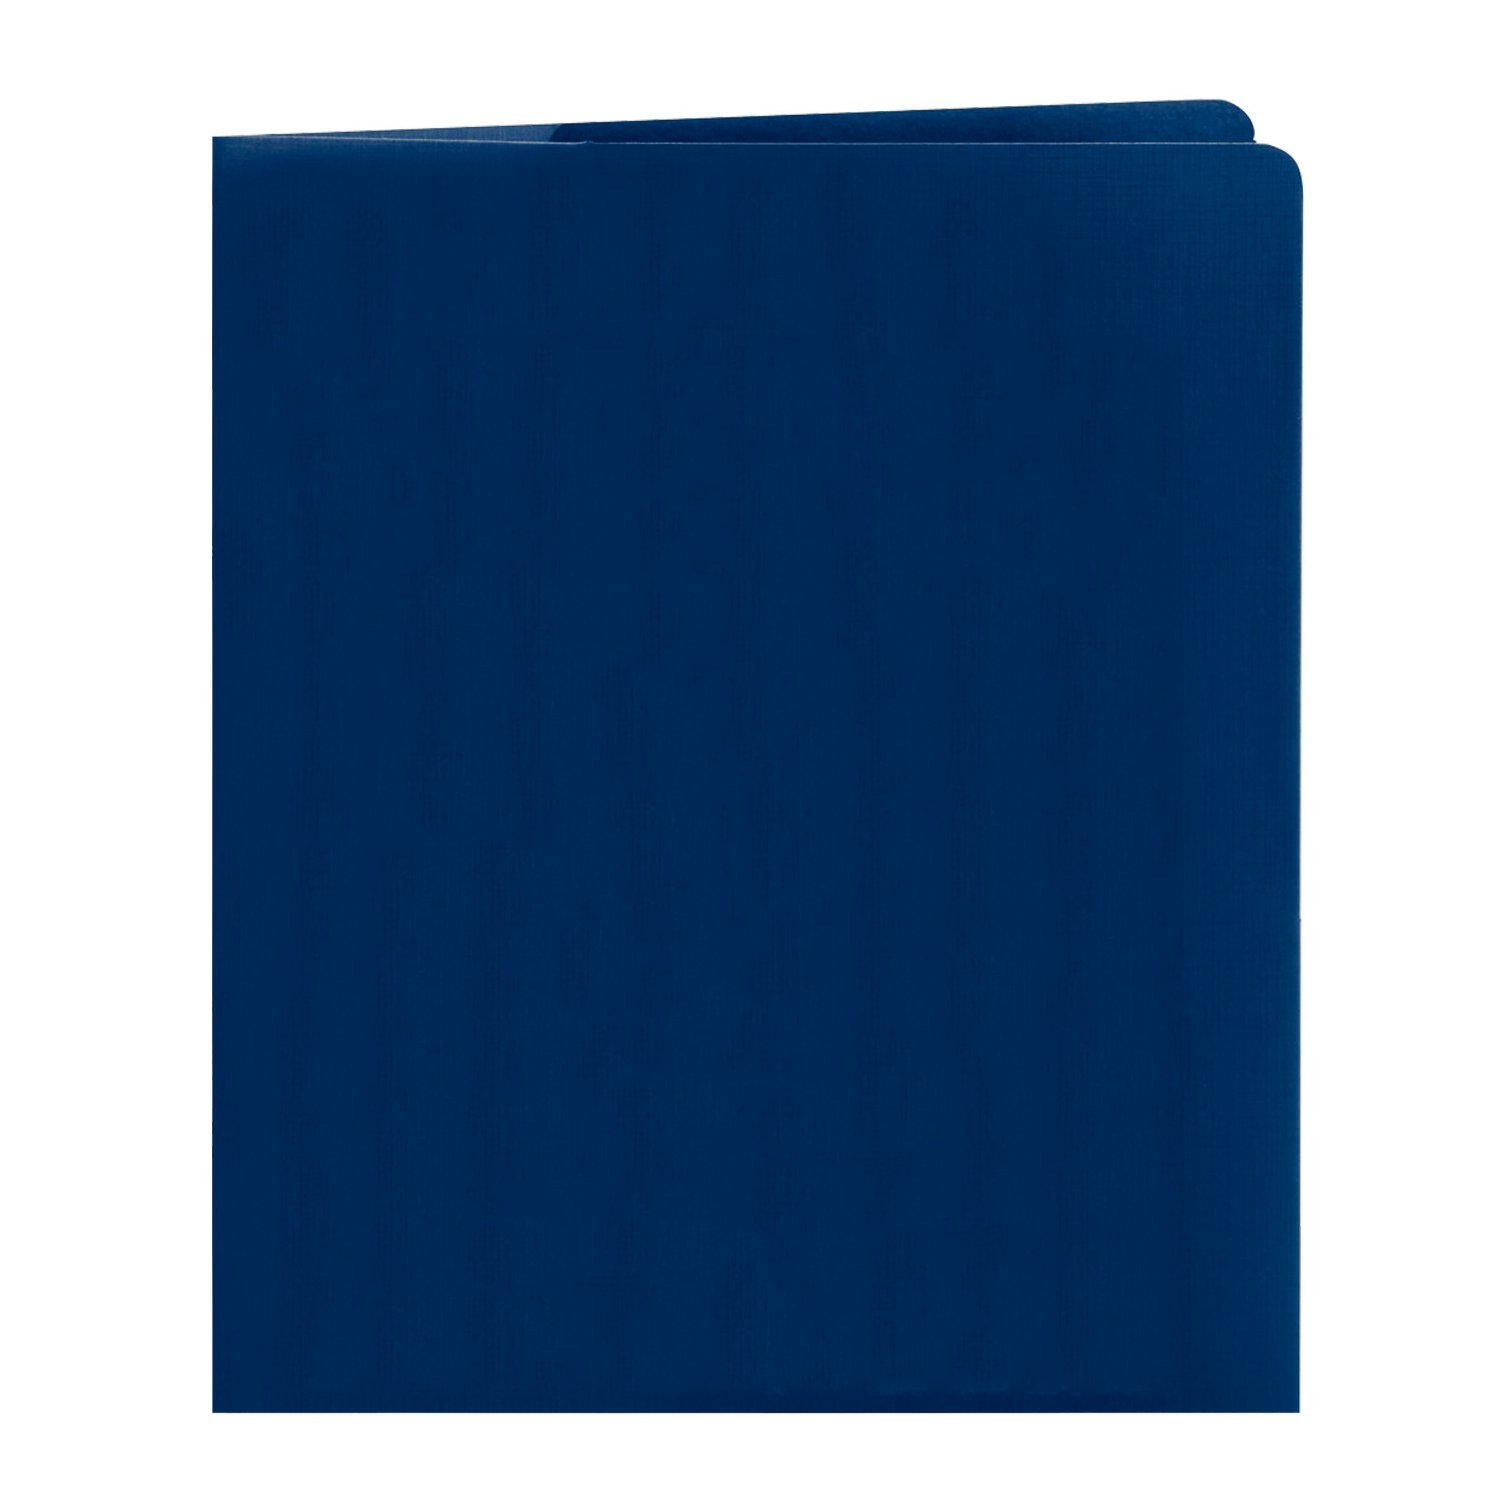 Generic File Folder, Up to 50 Sheets, Letter Size, Dark Blue